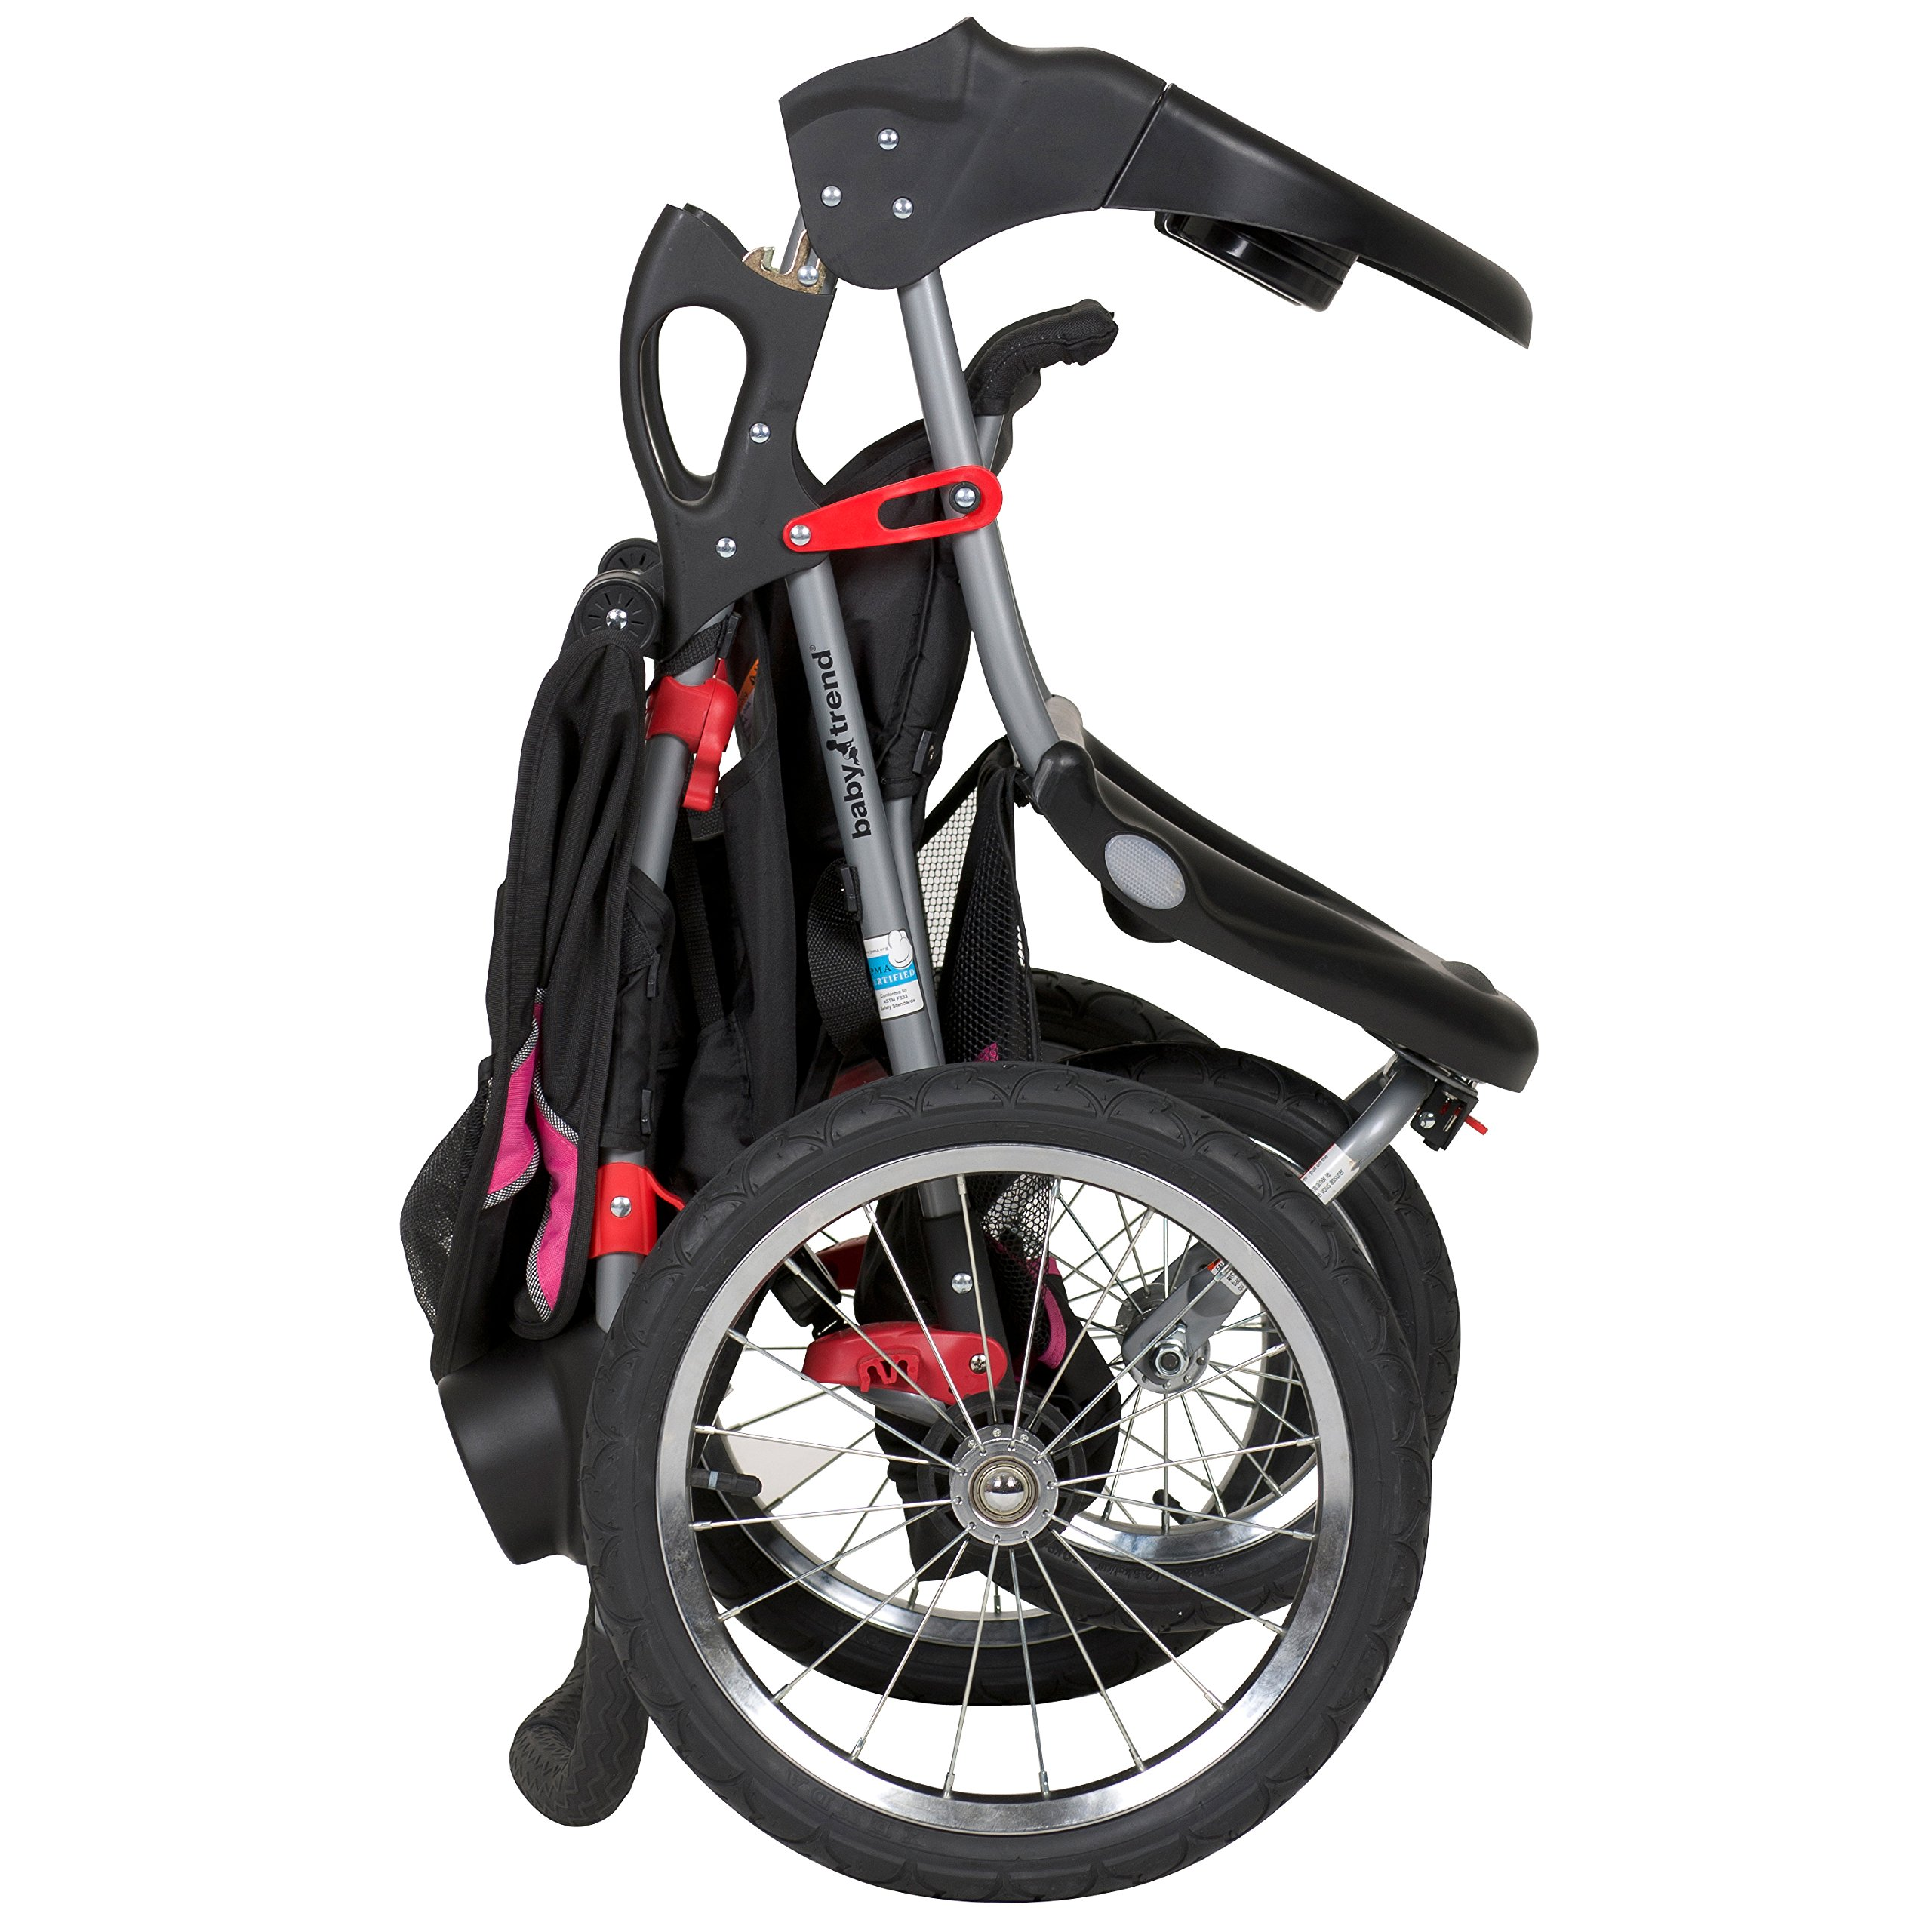 Baby Trend Expedition Jogger Stroller, Bubble Gum by Baby Trend (Image #5)